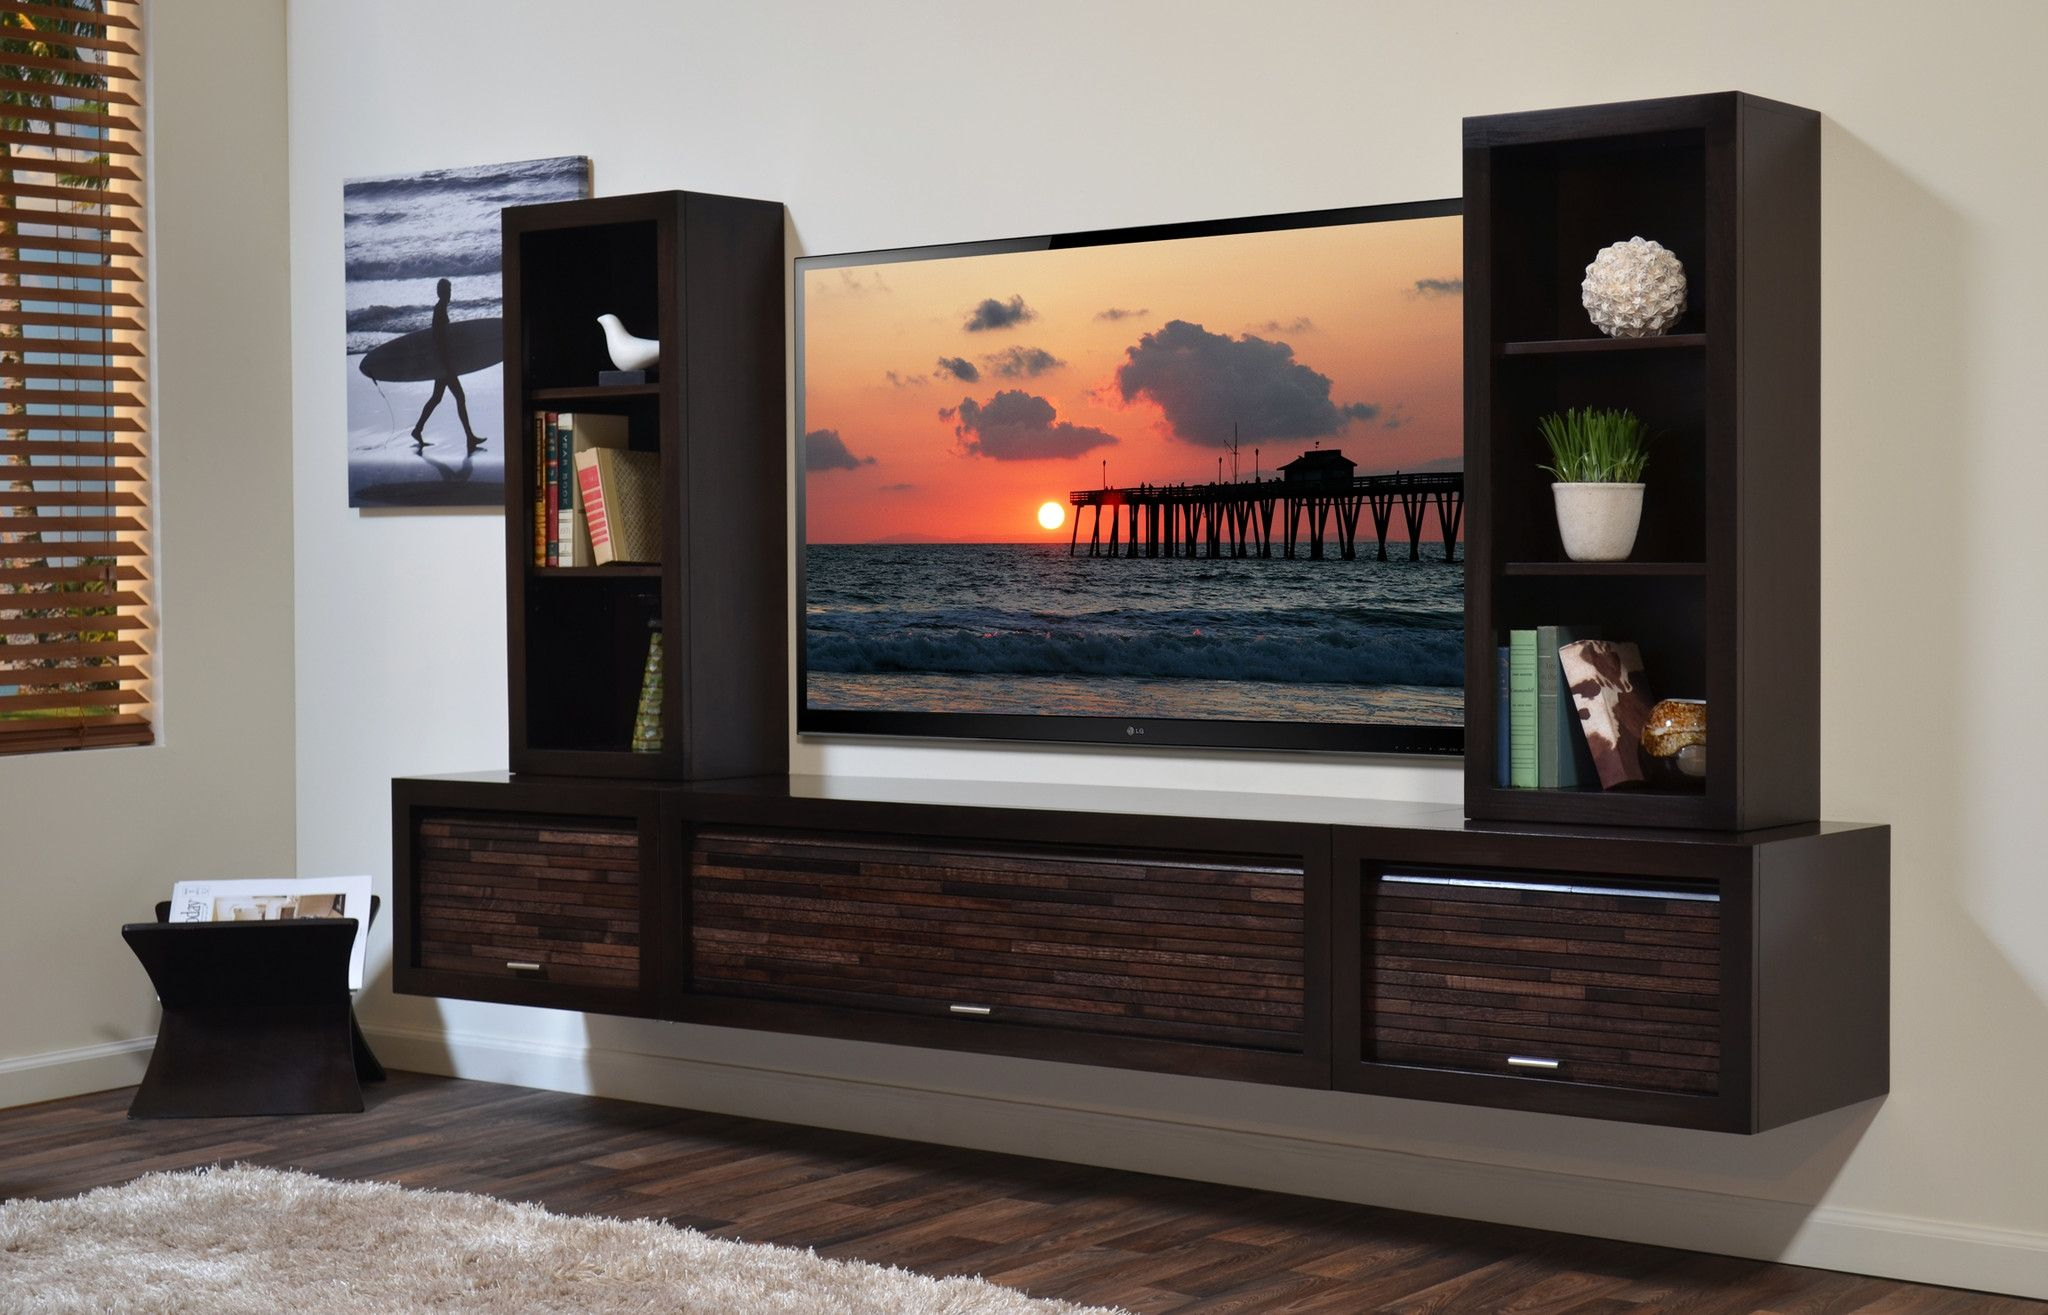 Wall Mount Entertainment Centers Furniture Http Bottomunion  # Muebles Bobrick